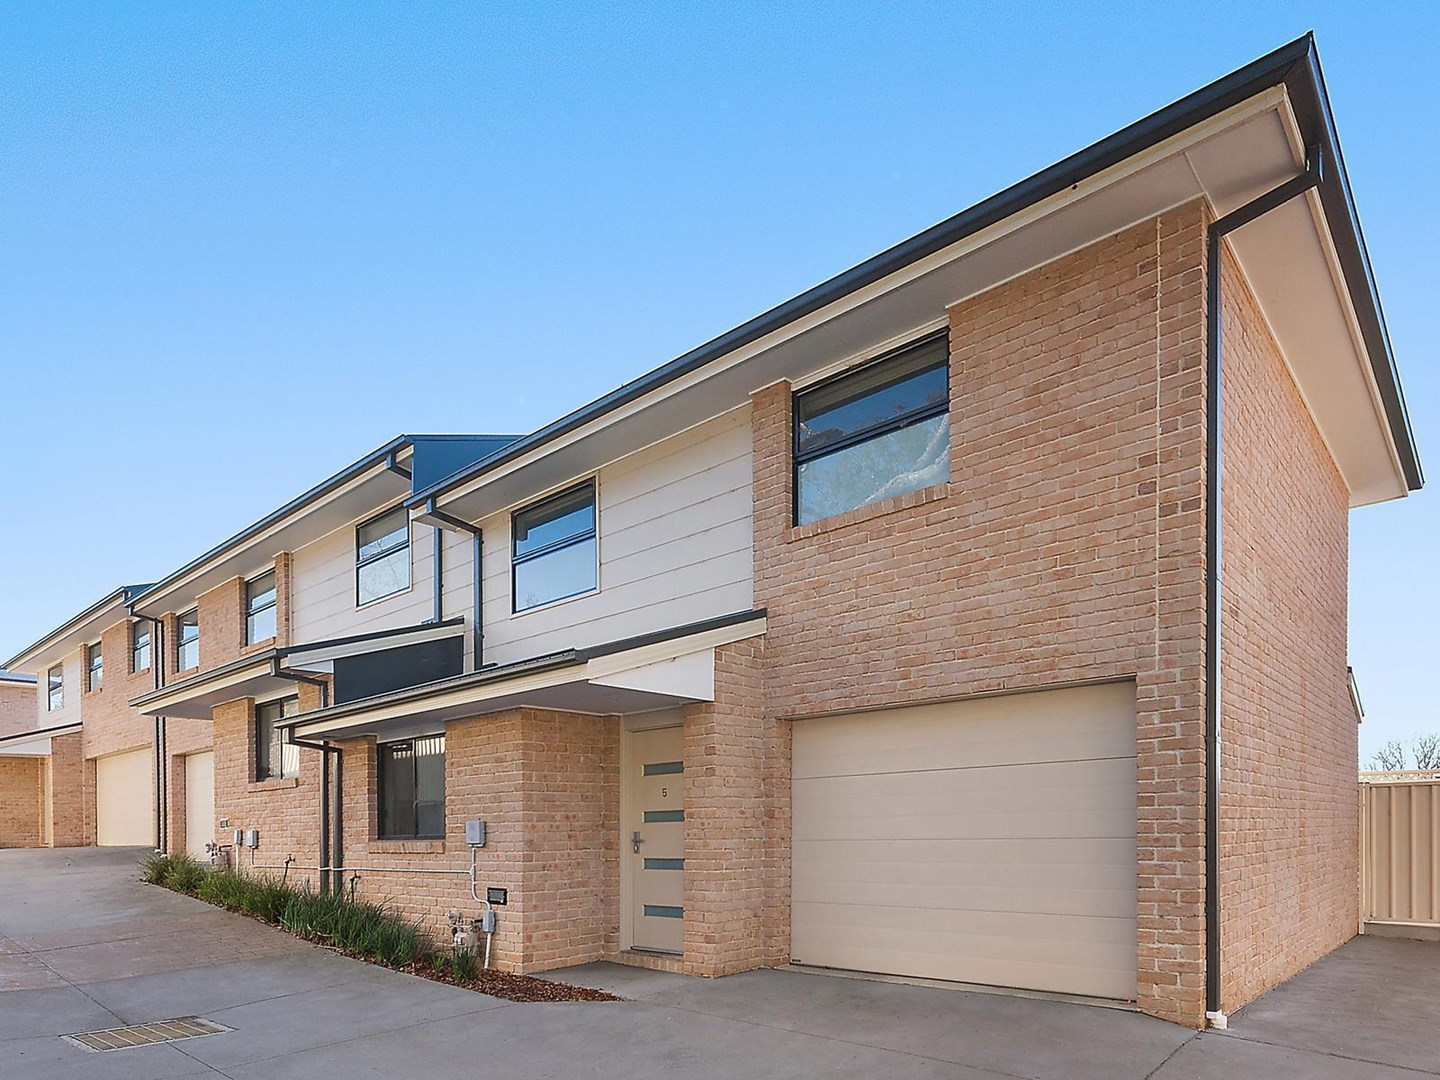 5/36 Cameron Road, Queanbeyan NSW 2620, Image 0